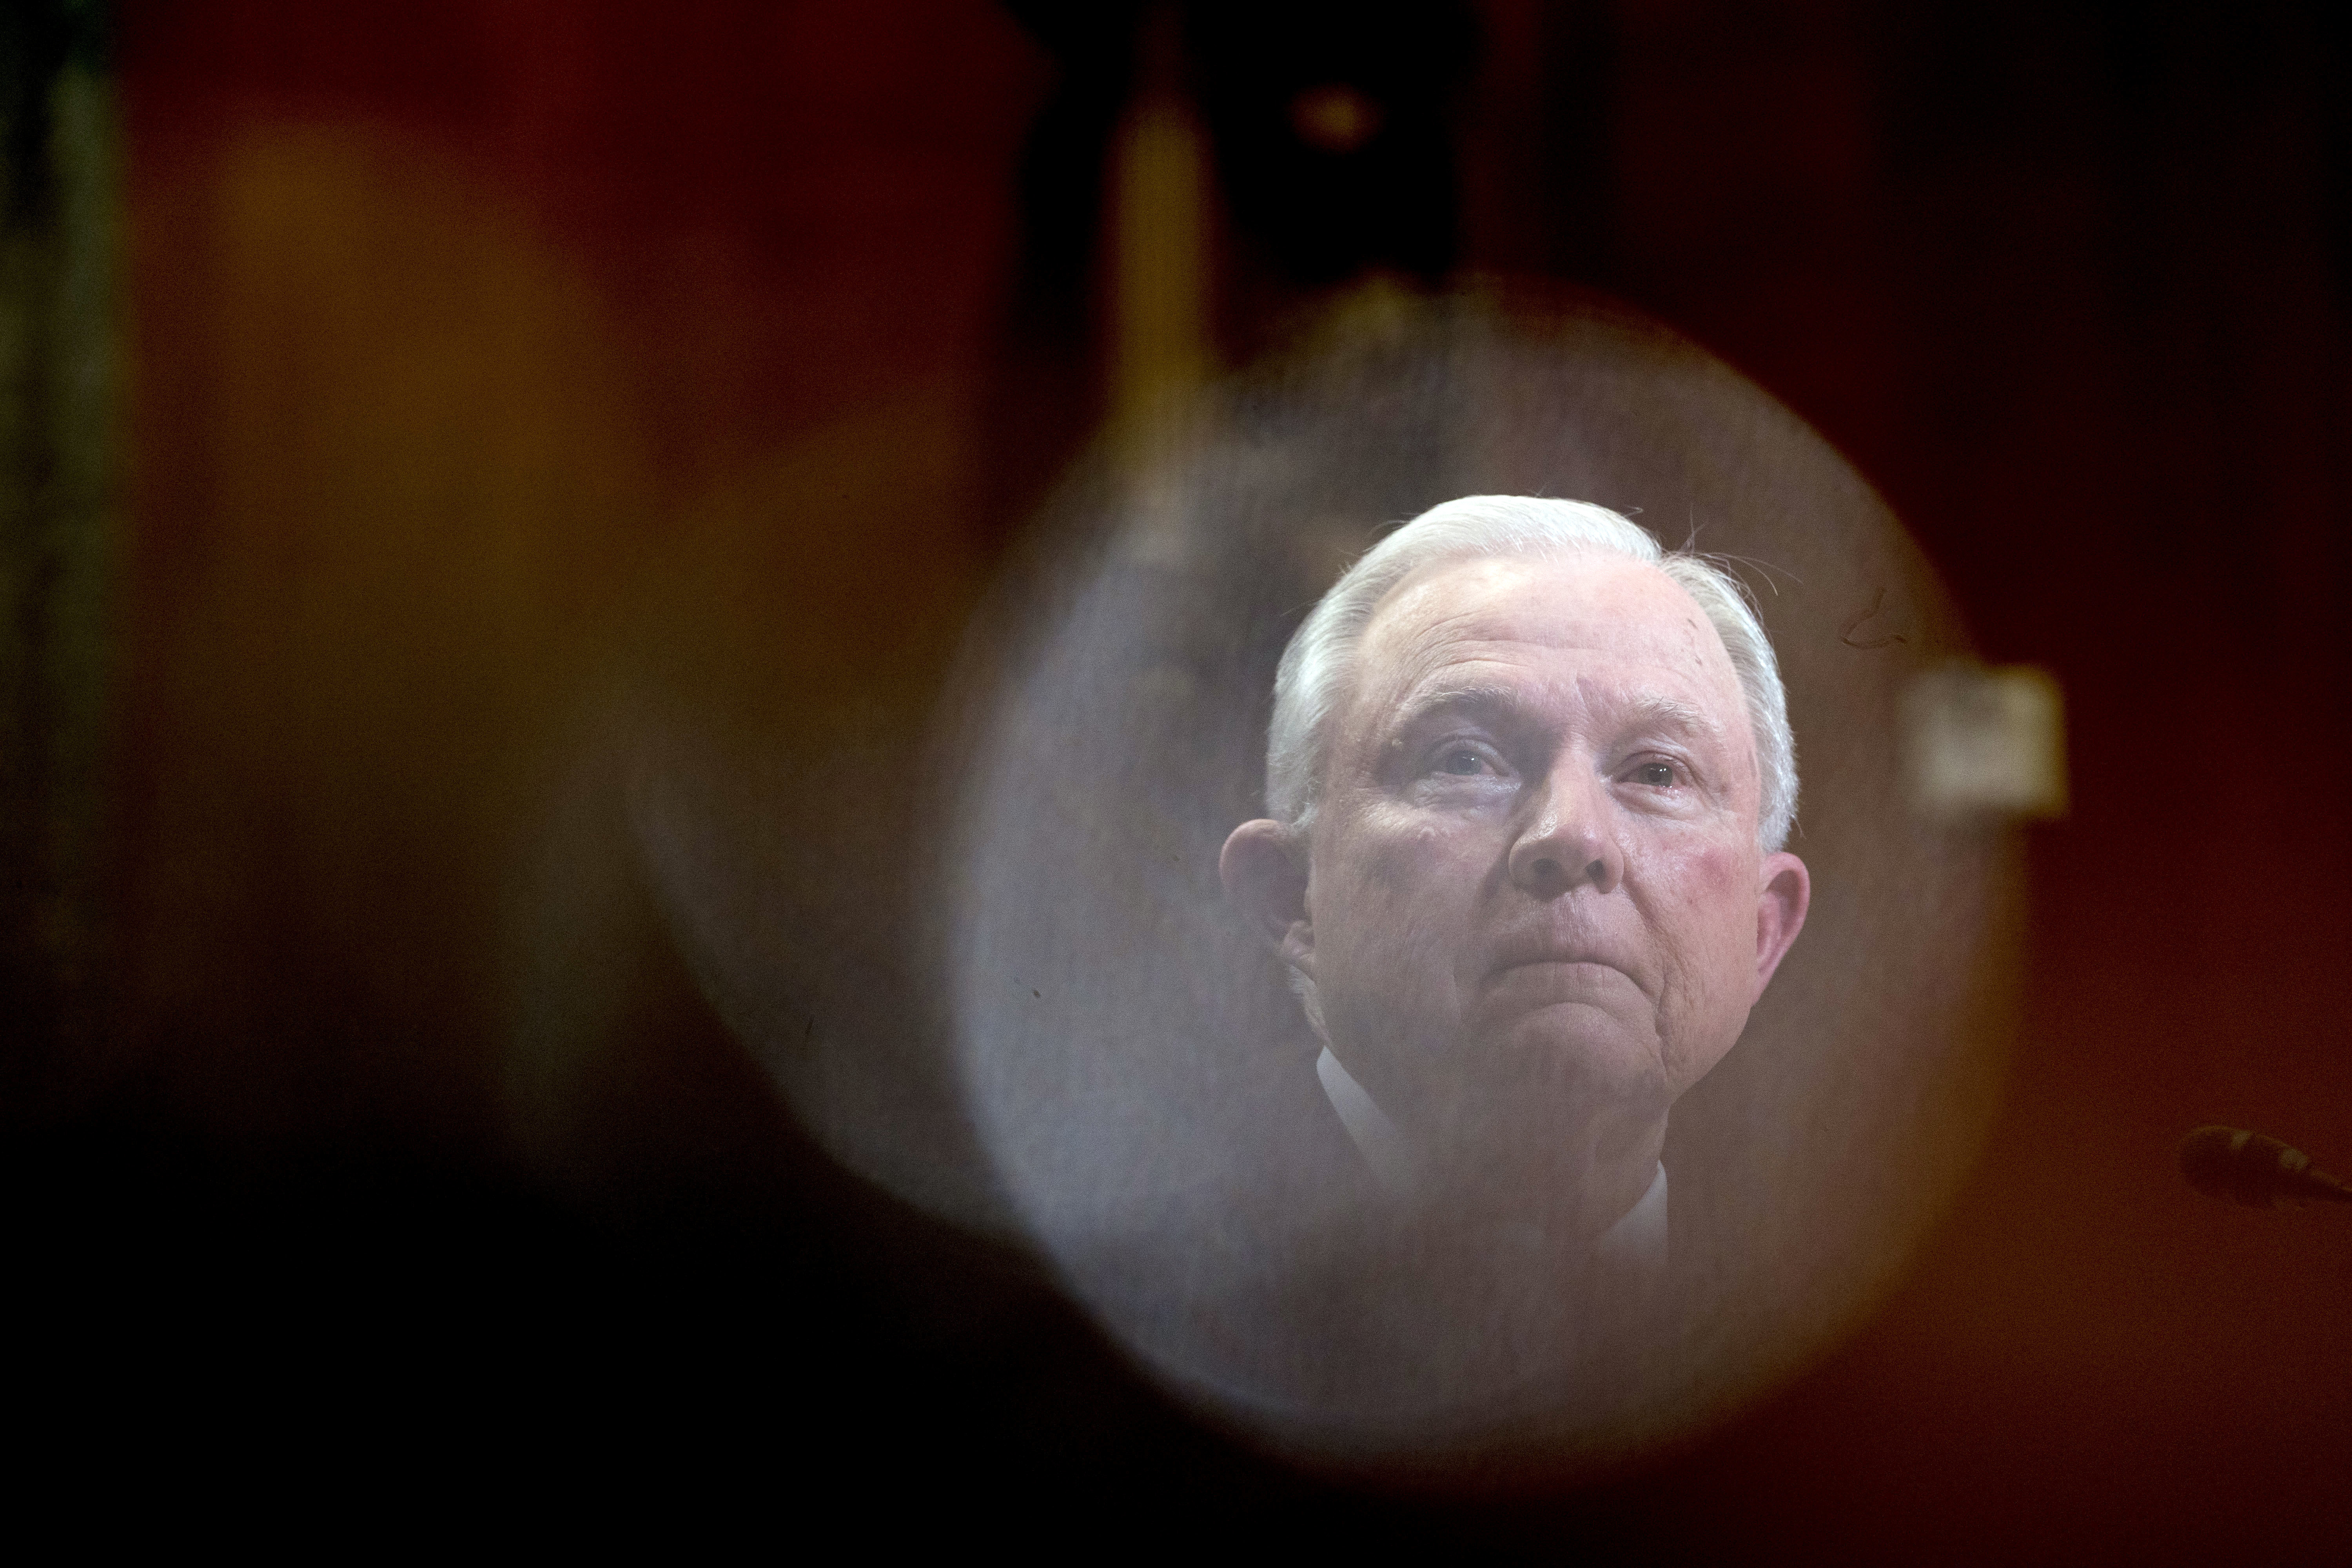 rollingstone.com - Tim Dickinson - Did Jeff Sessions Know of Proposed Trump-Putin Back Channel?